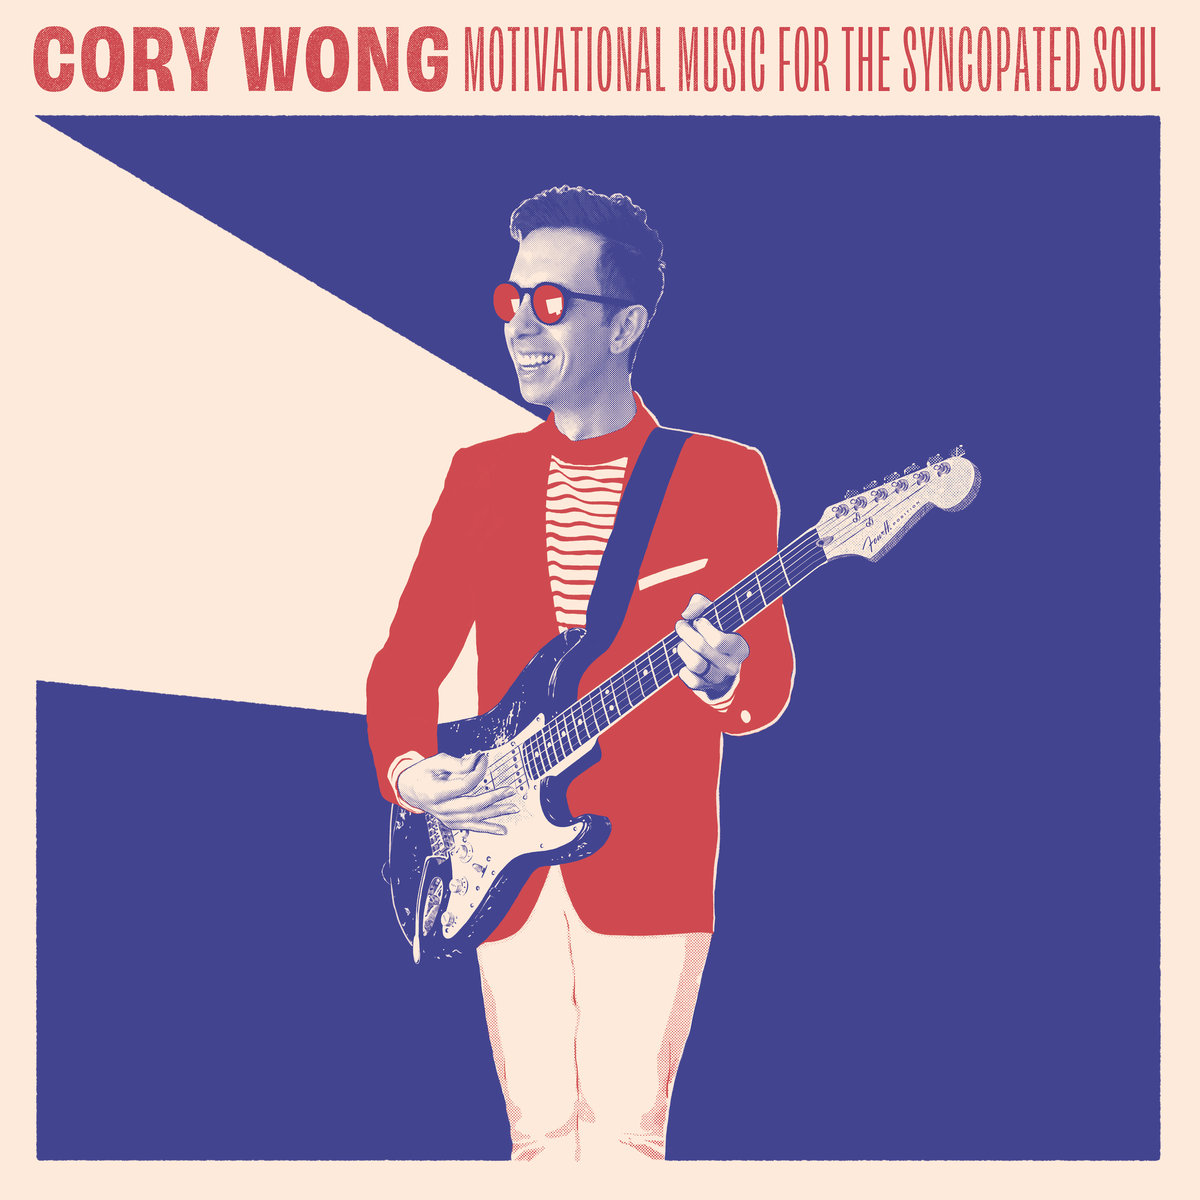 Cory Wong - Motivational Music for the Syncopated Soul